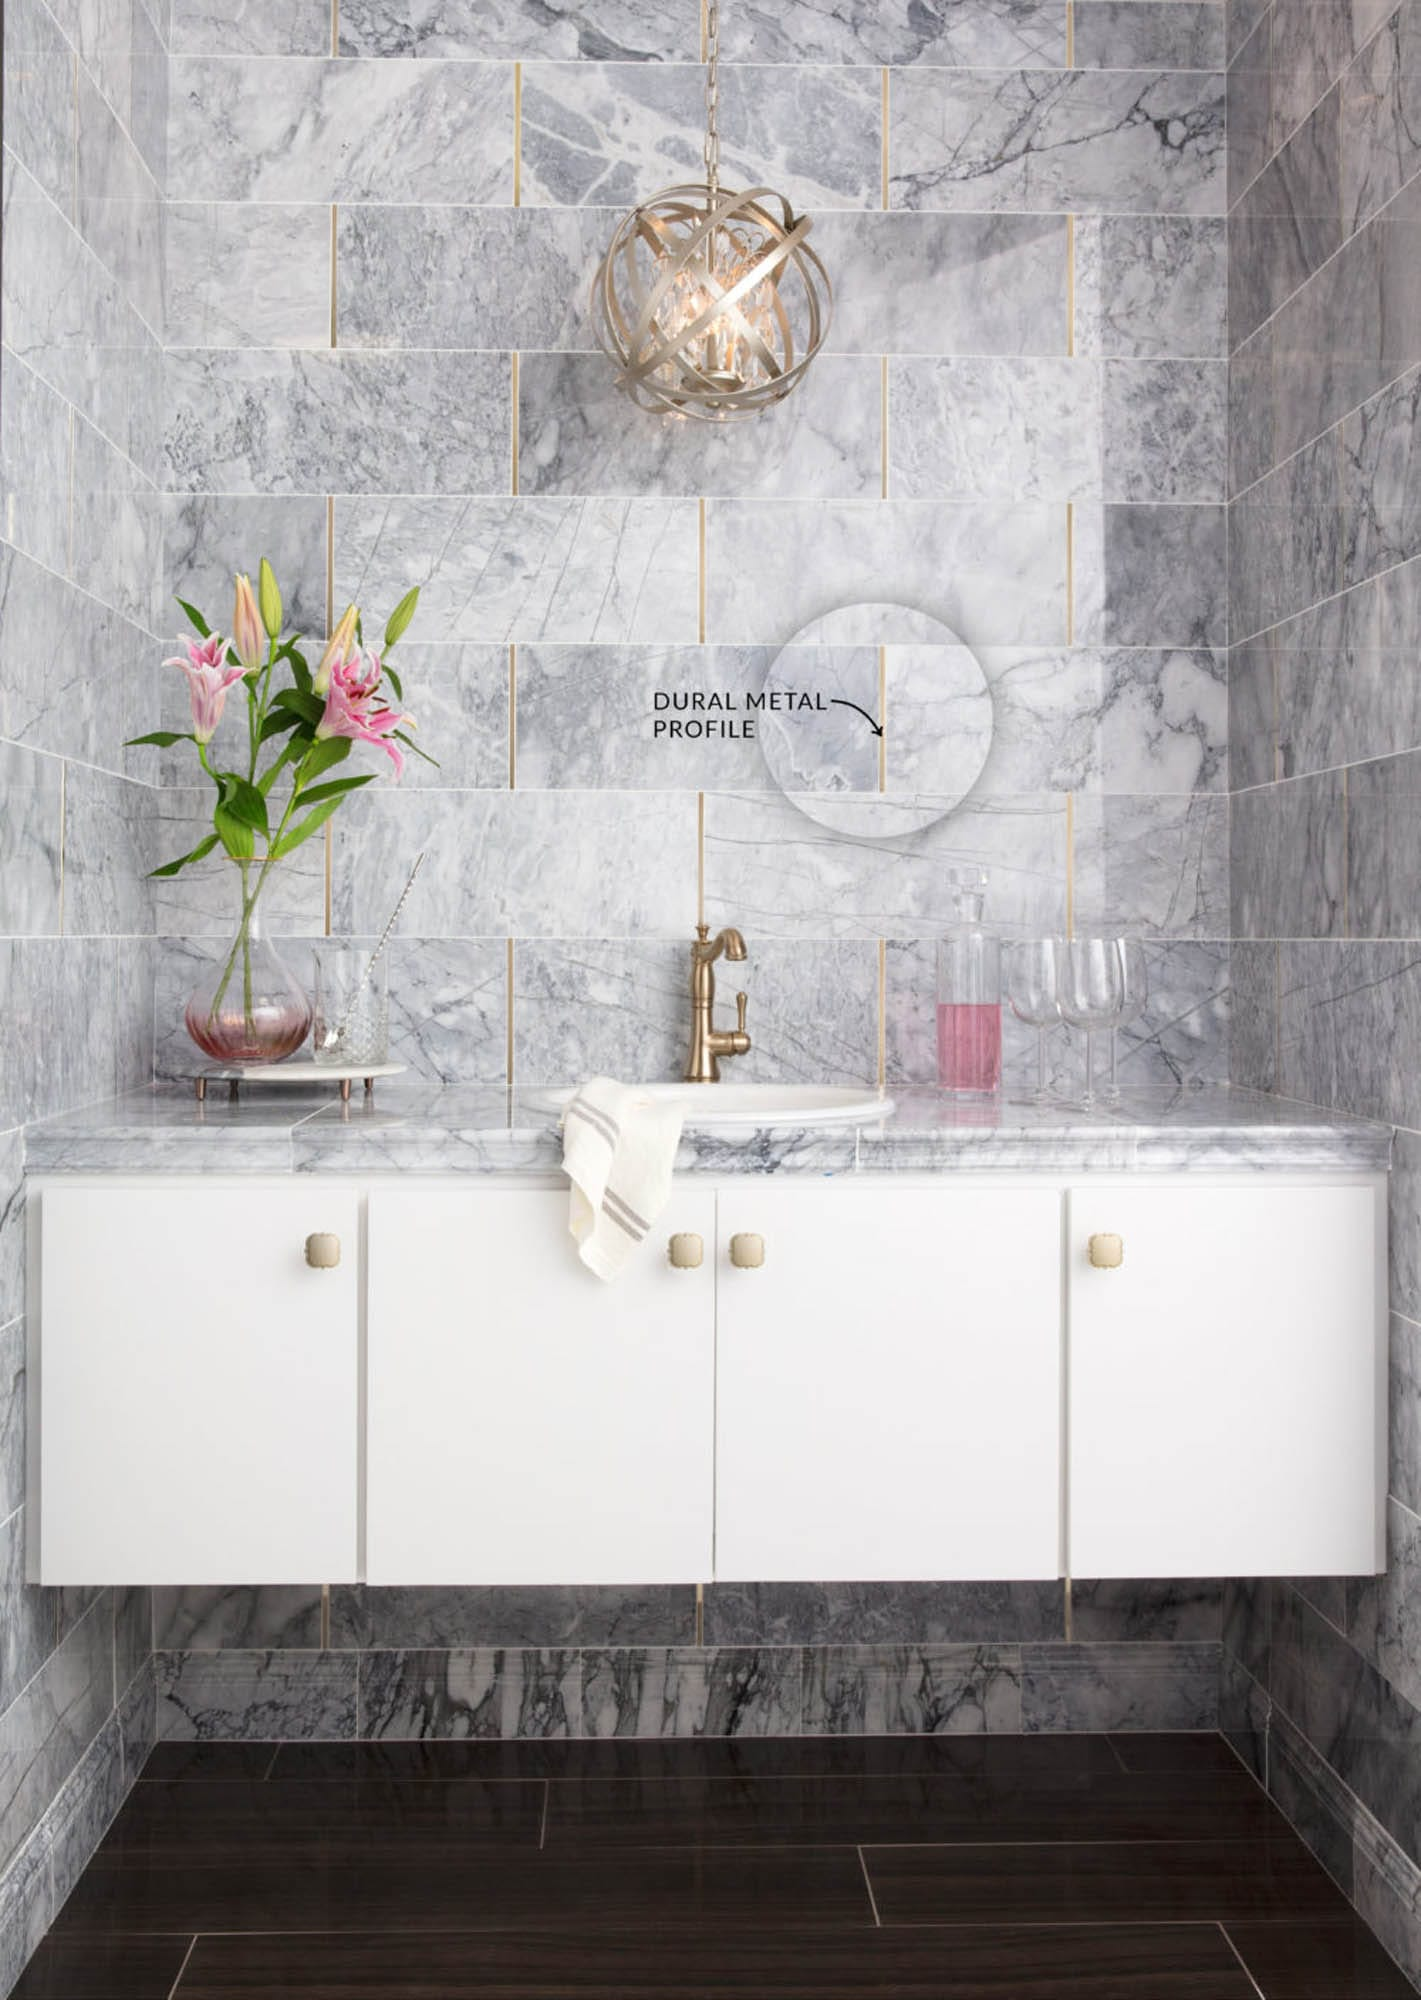 Dural metal profiles are a glamorous way to layer with marble.